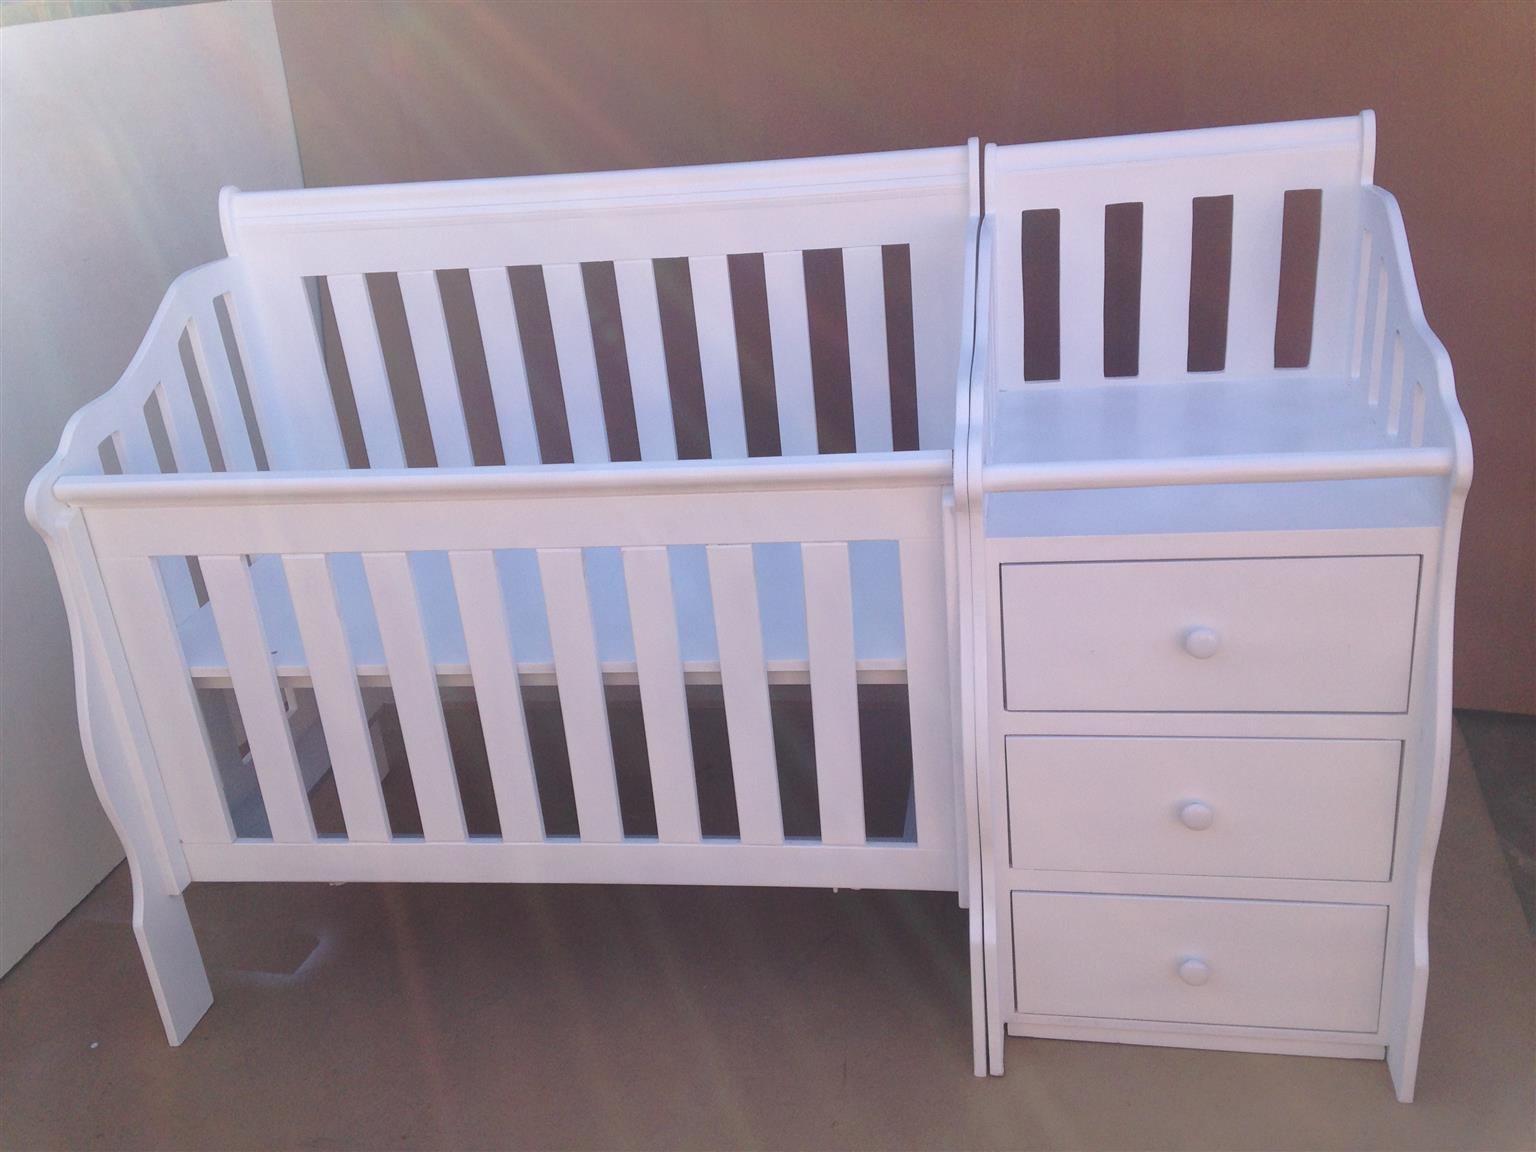 Lotus Combined Baby Cot & Compactum R5999,00